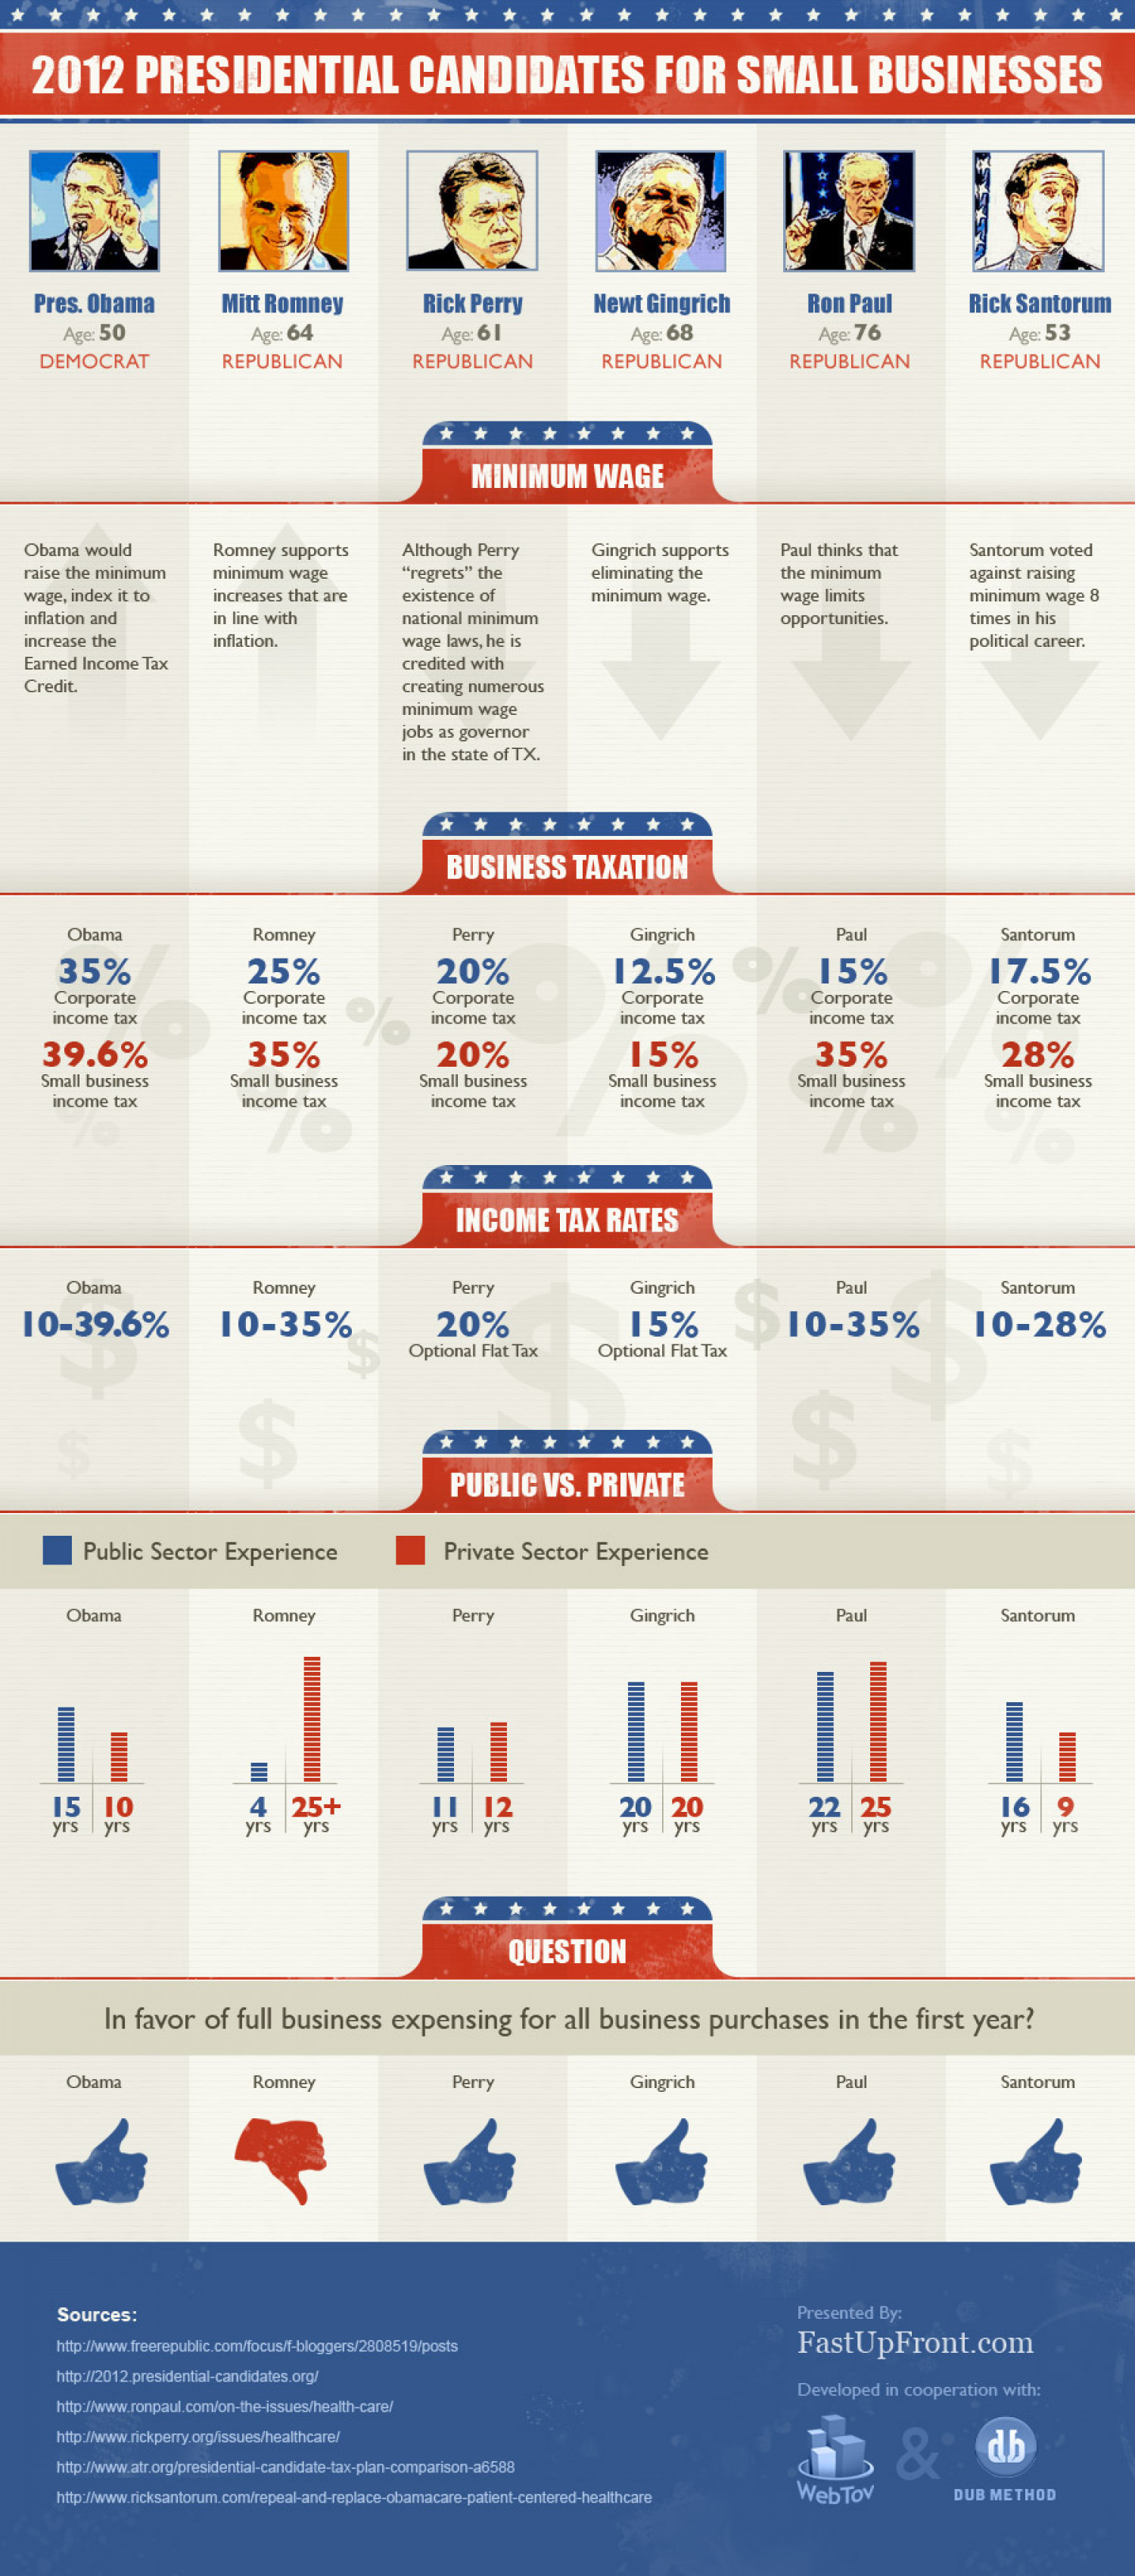 Who Should Businesses Vote for in 2012? Infographic